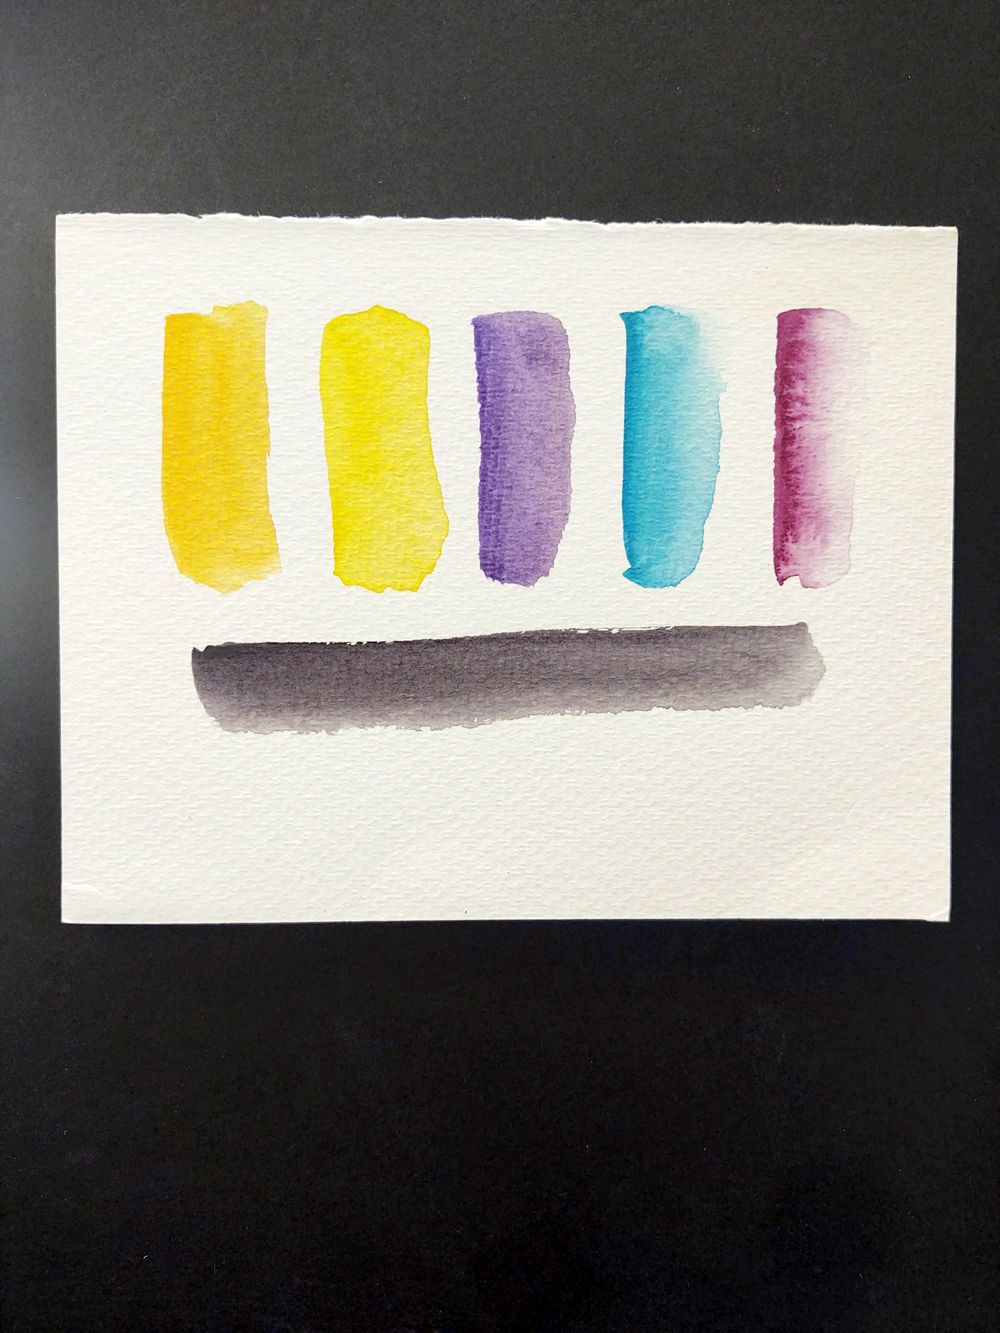 Abstract Watercolor - image 3 - student project